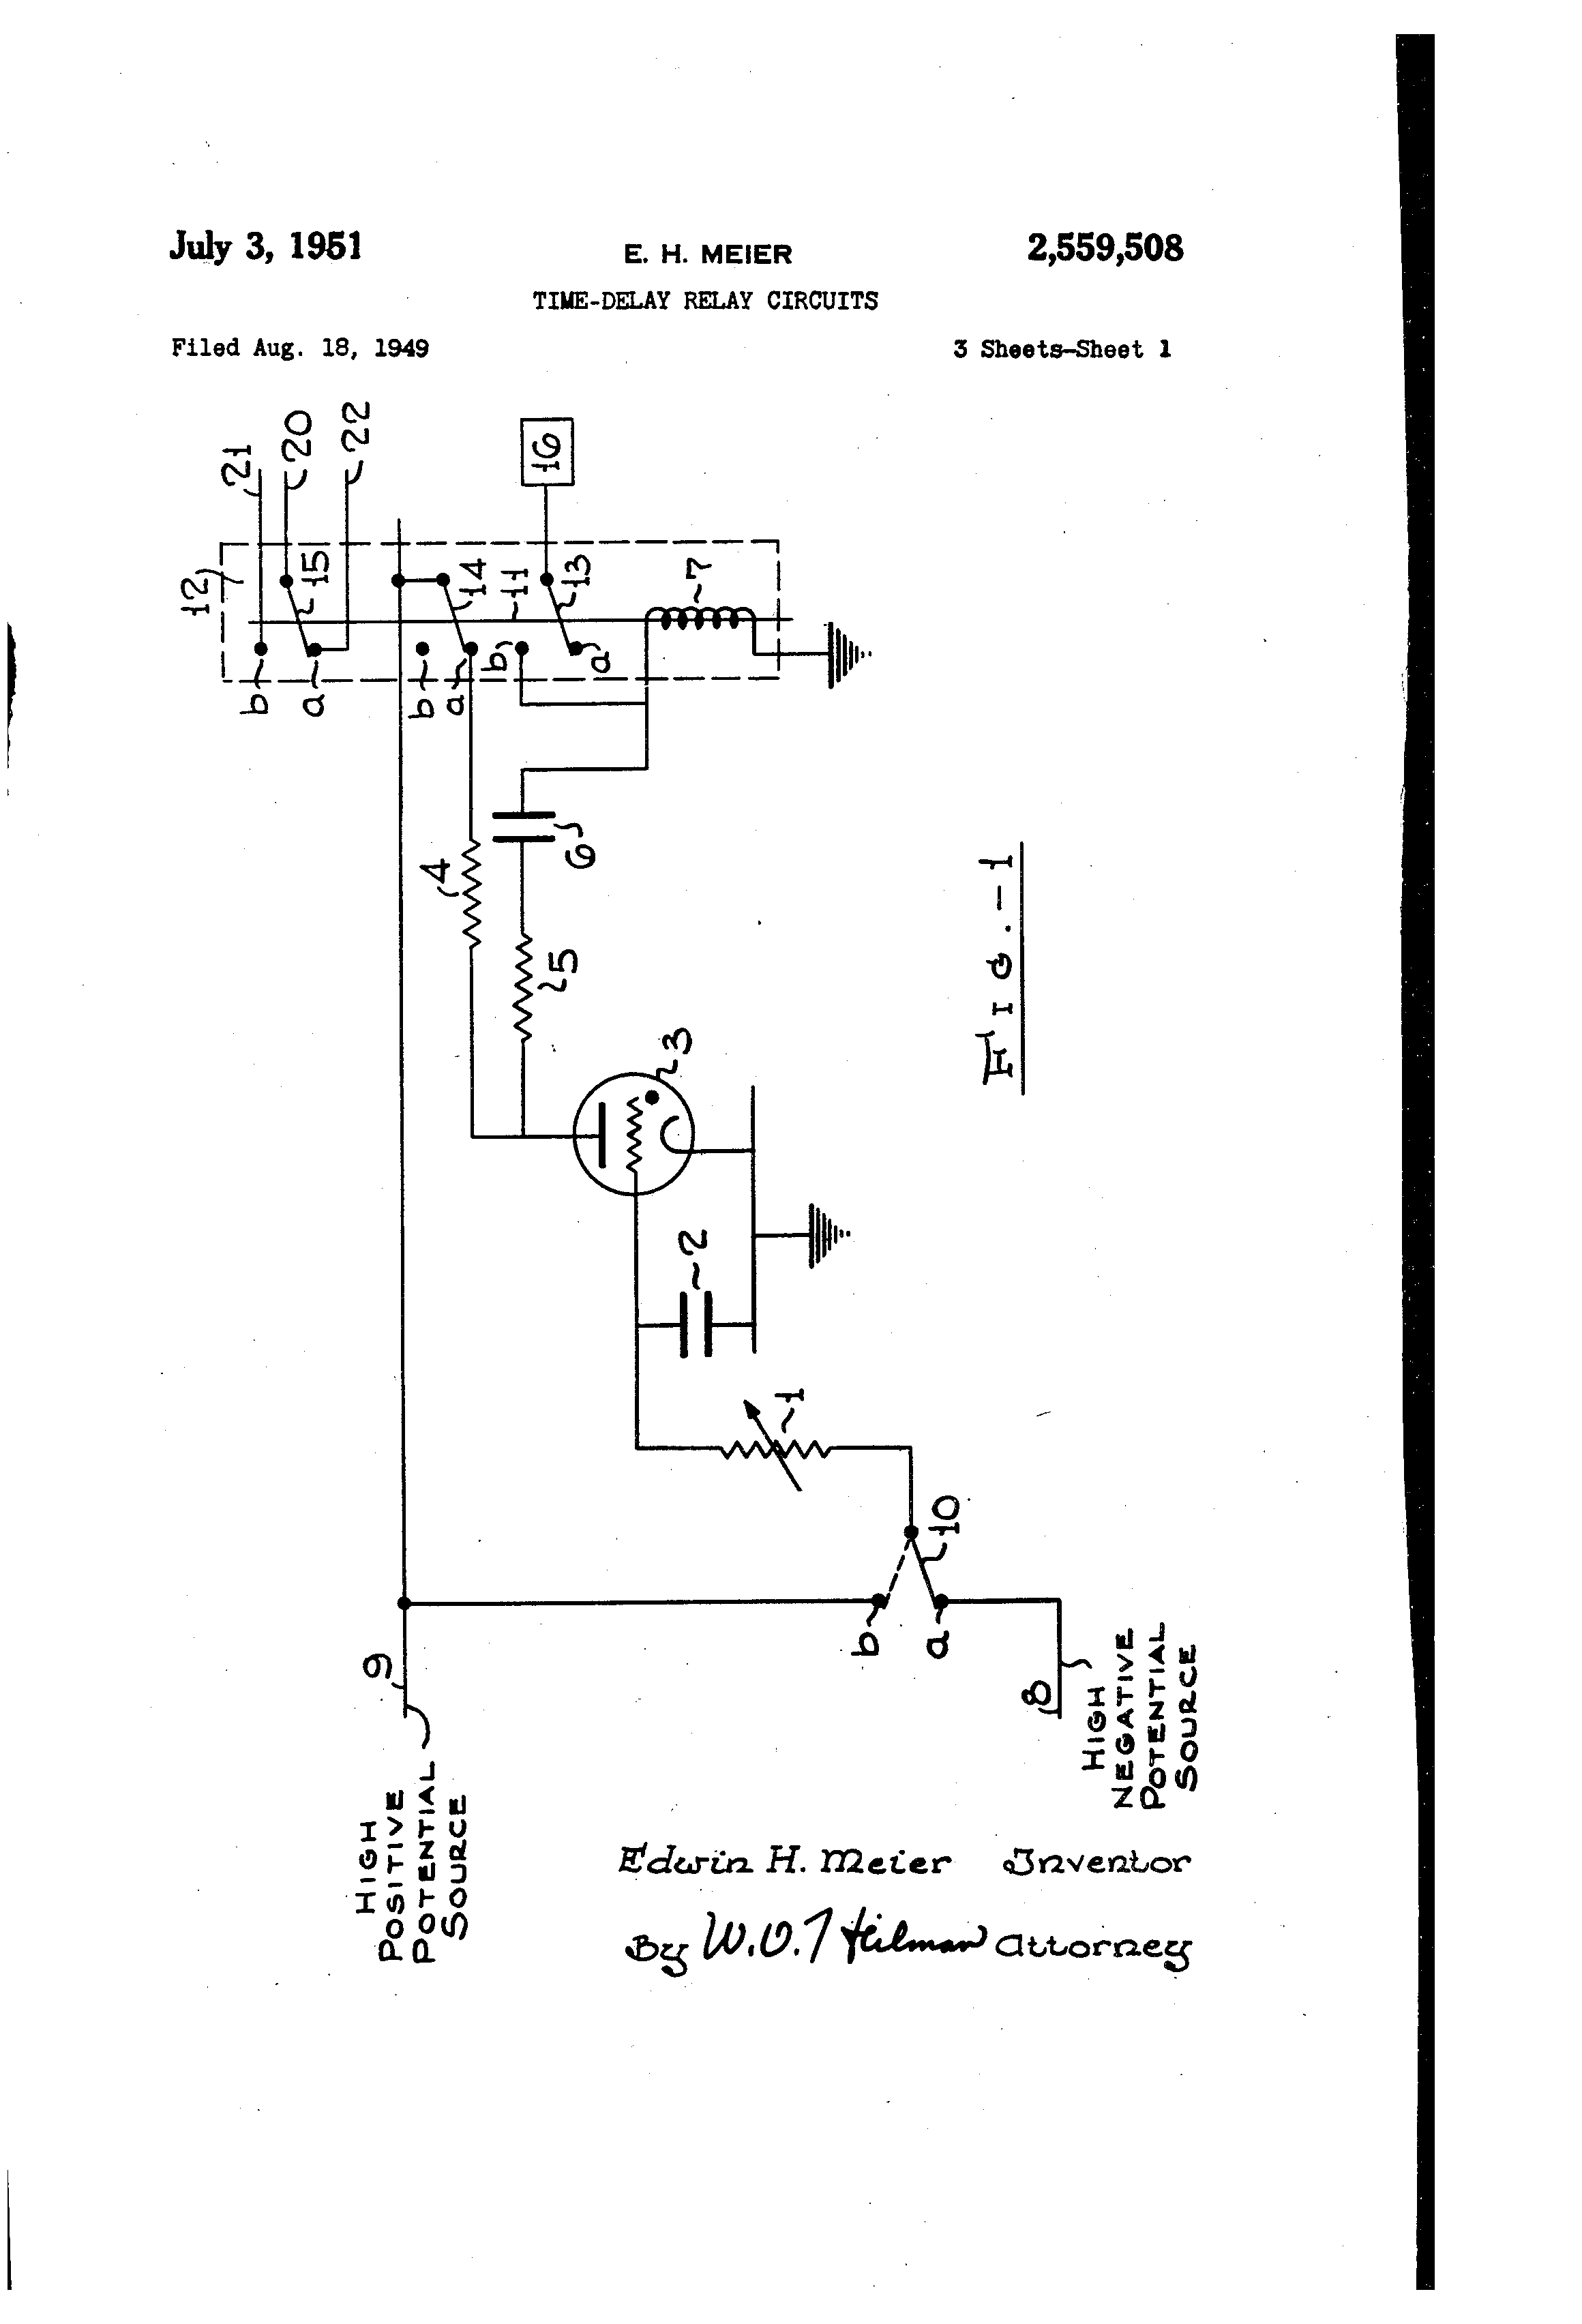 Brevet Us2559508 Time Delay Relay Circuits Google Brevets Circuit Design Patent Drawing